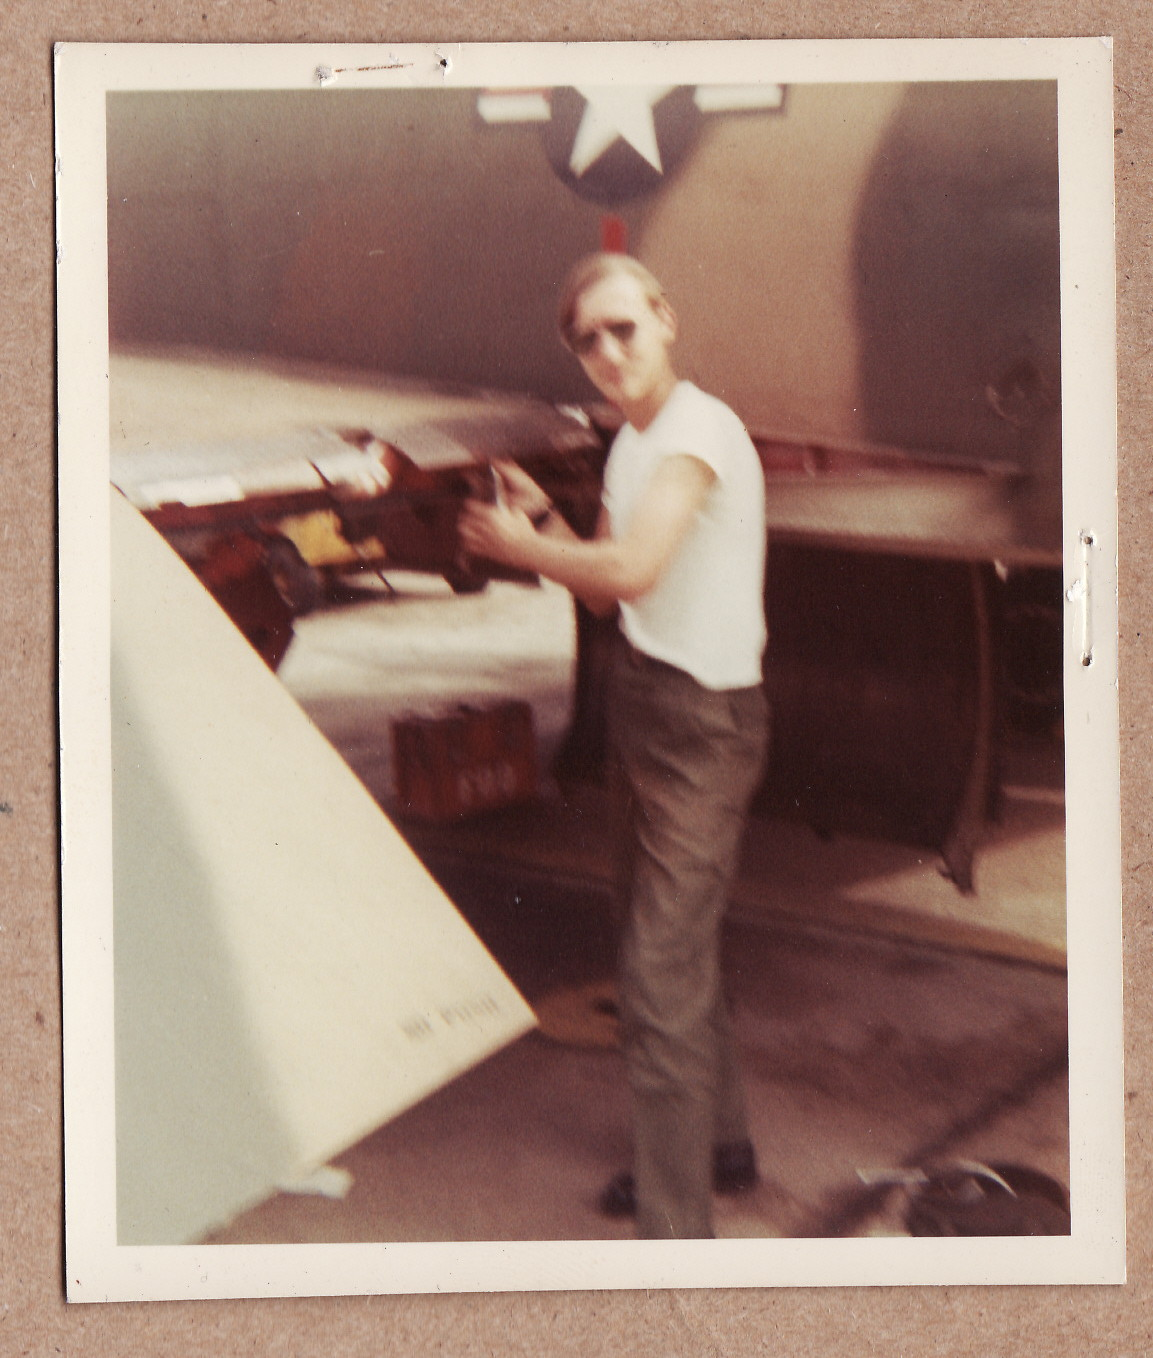 A1C Glenn Scott - Please describe who or what influenced your decision to join the Air Force?